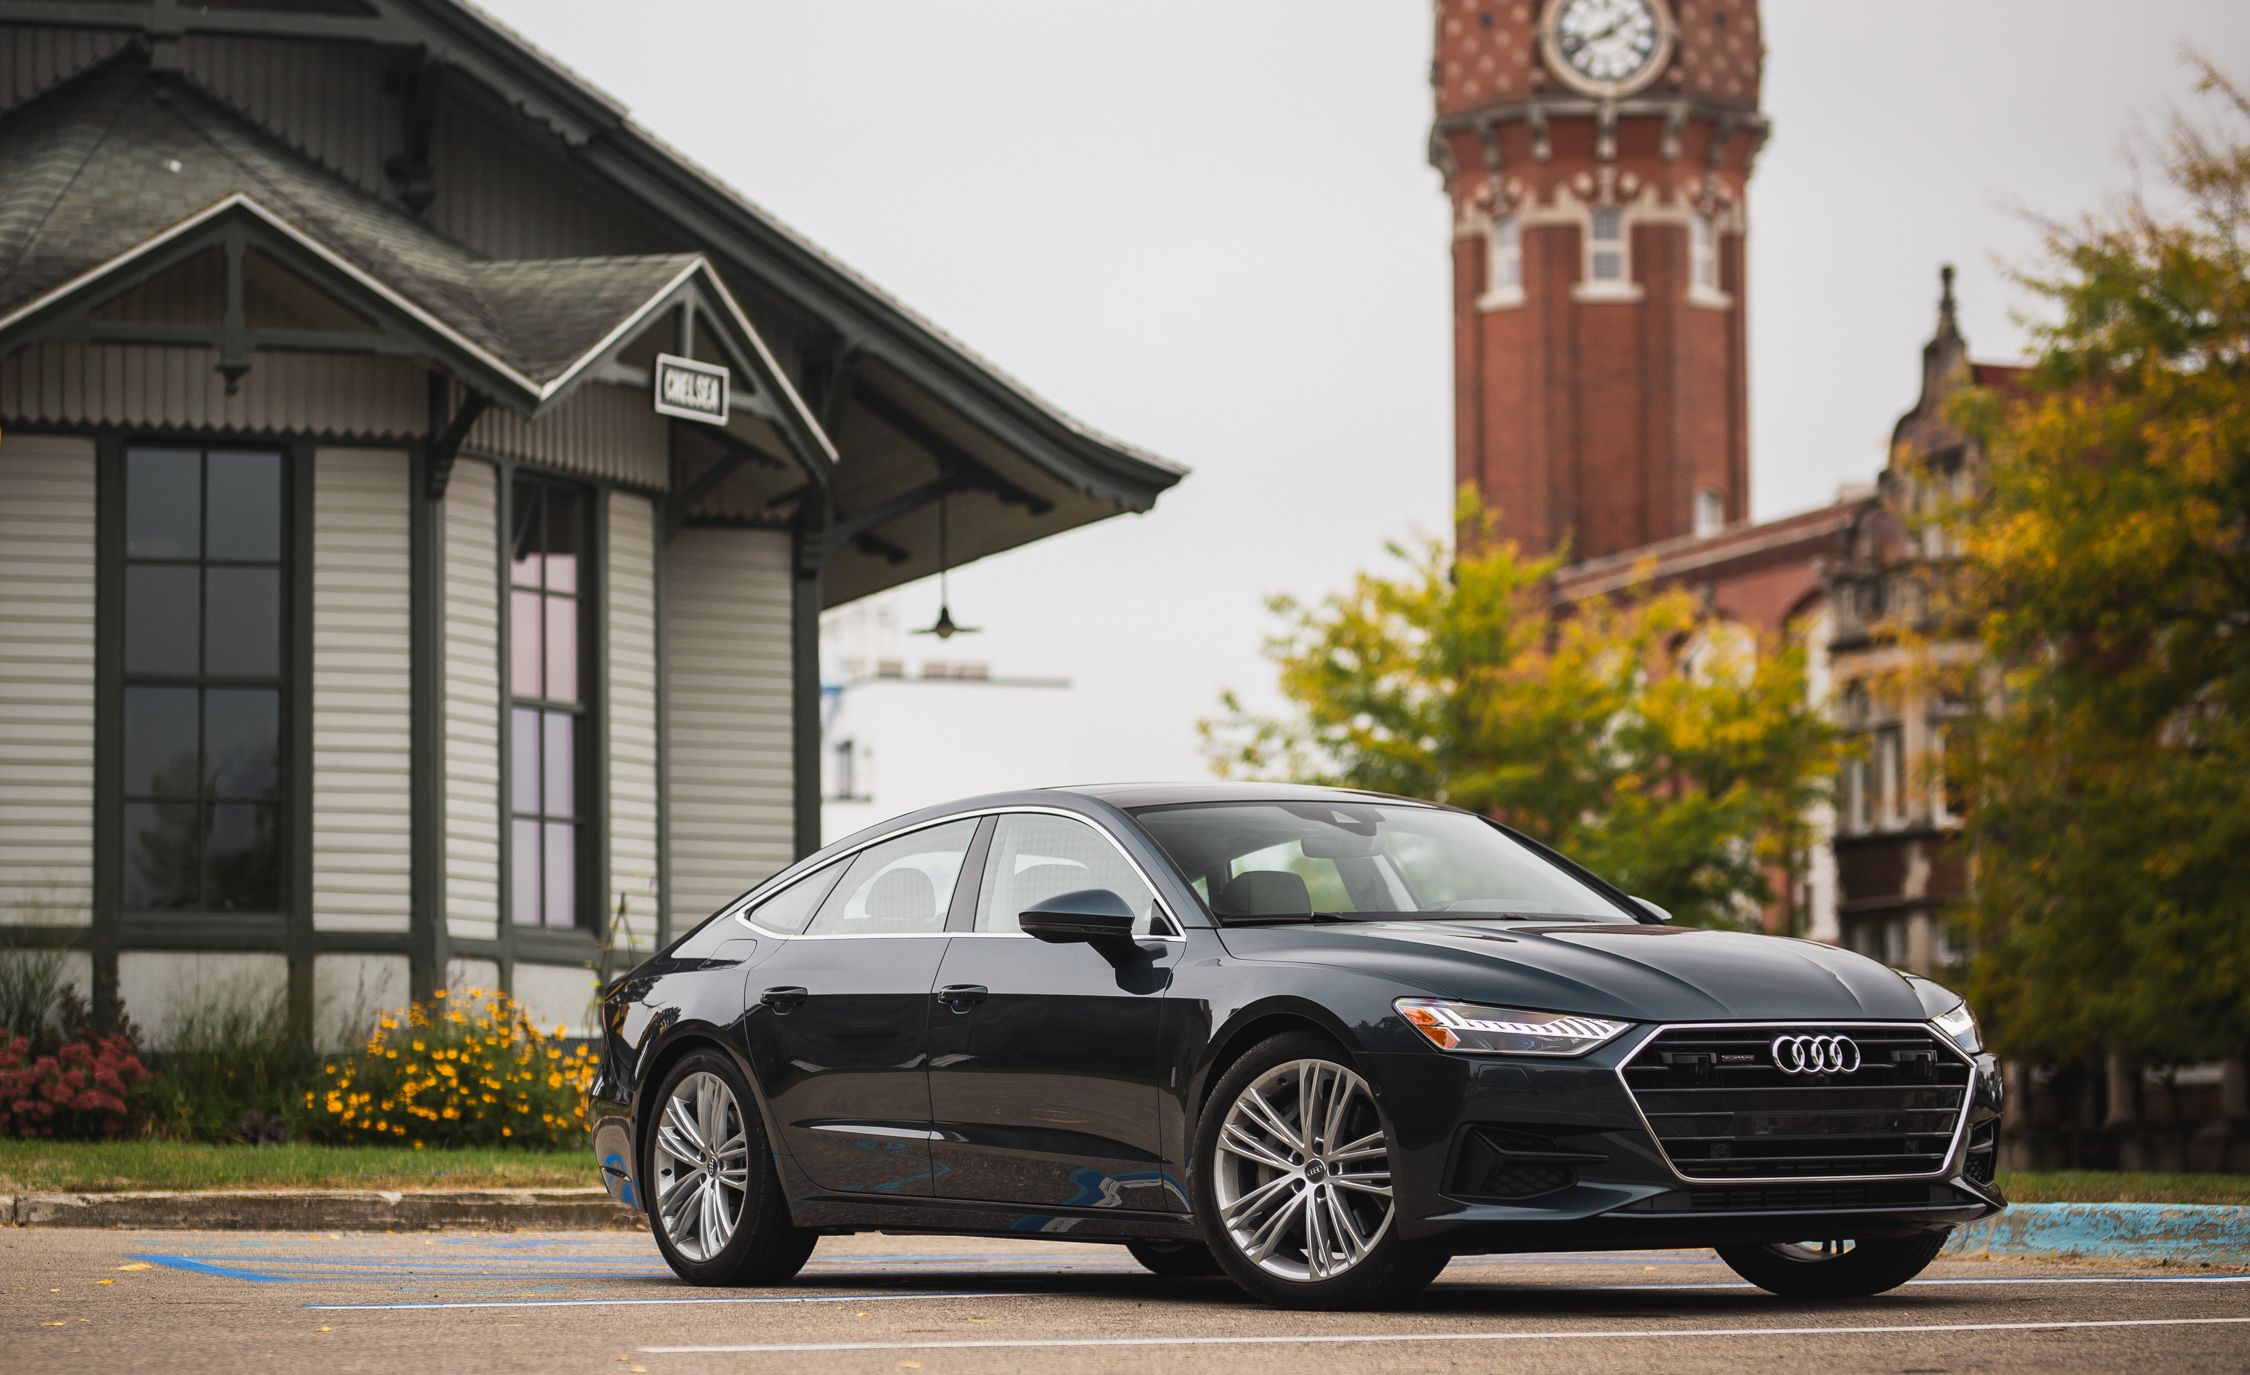 Audi A7 Reviews Audi A7 Price s and Specs